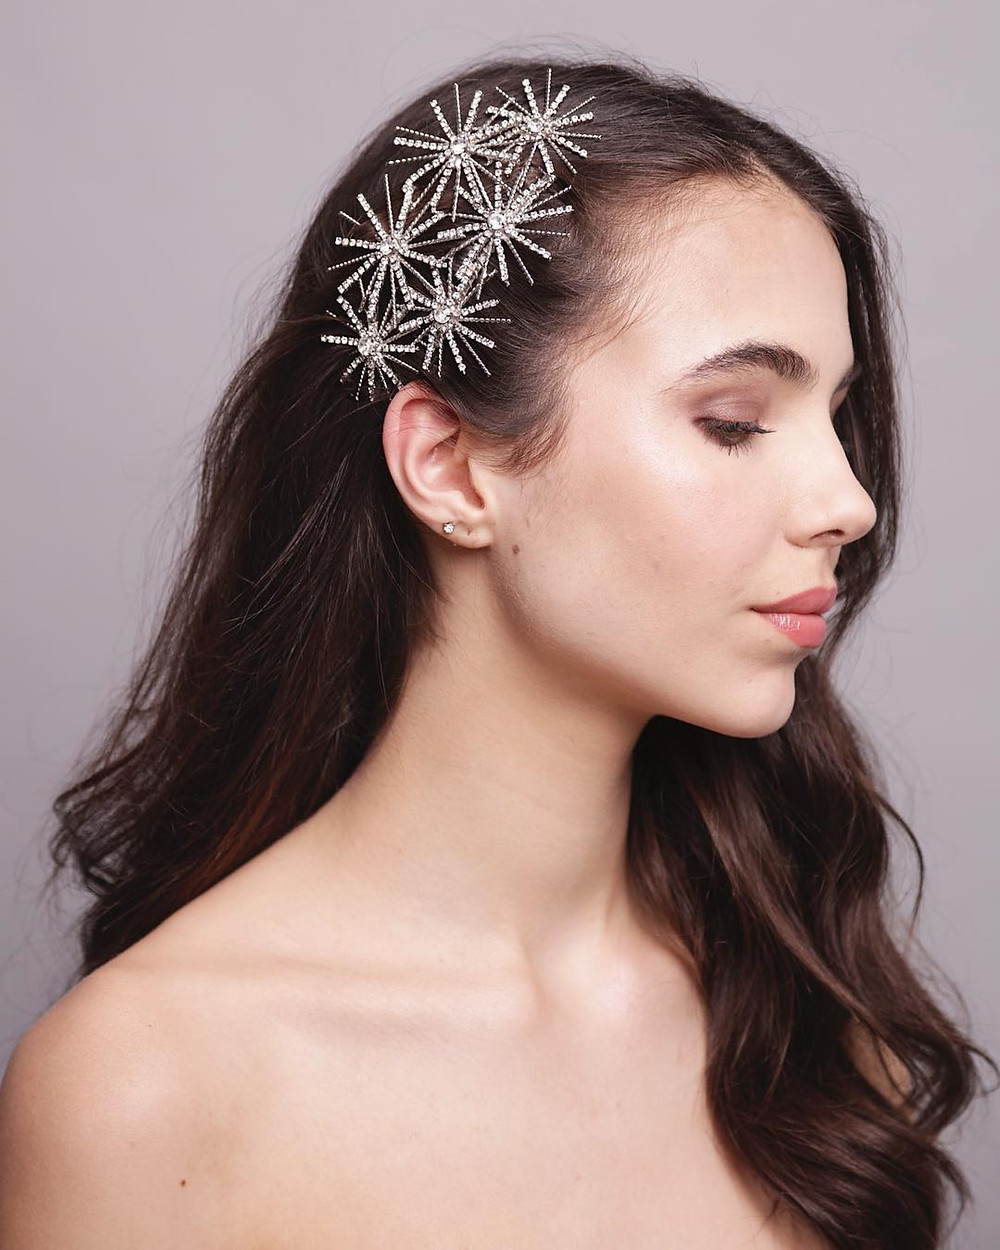 The Aurea Rays swarovski crystal headpieces by Aura Headpieces